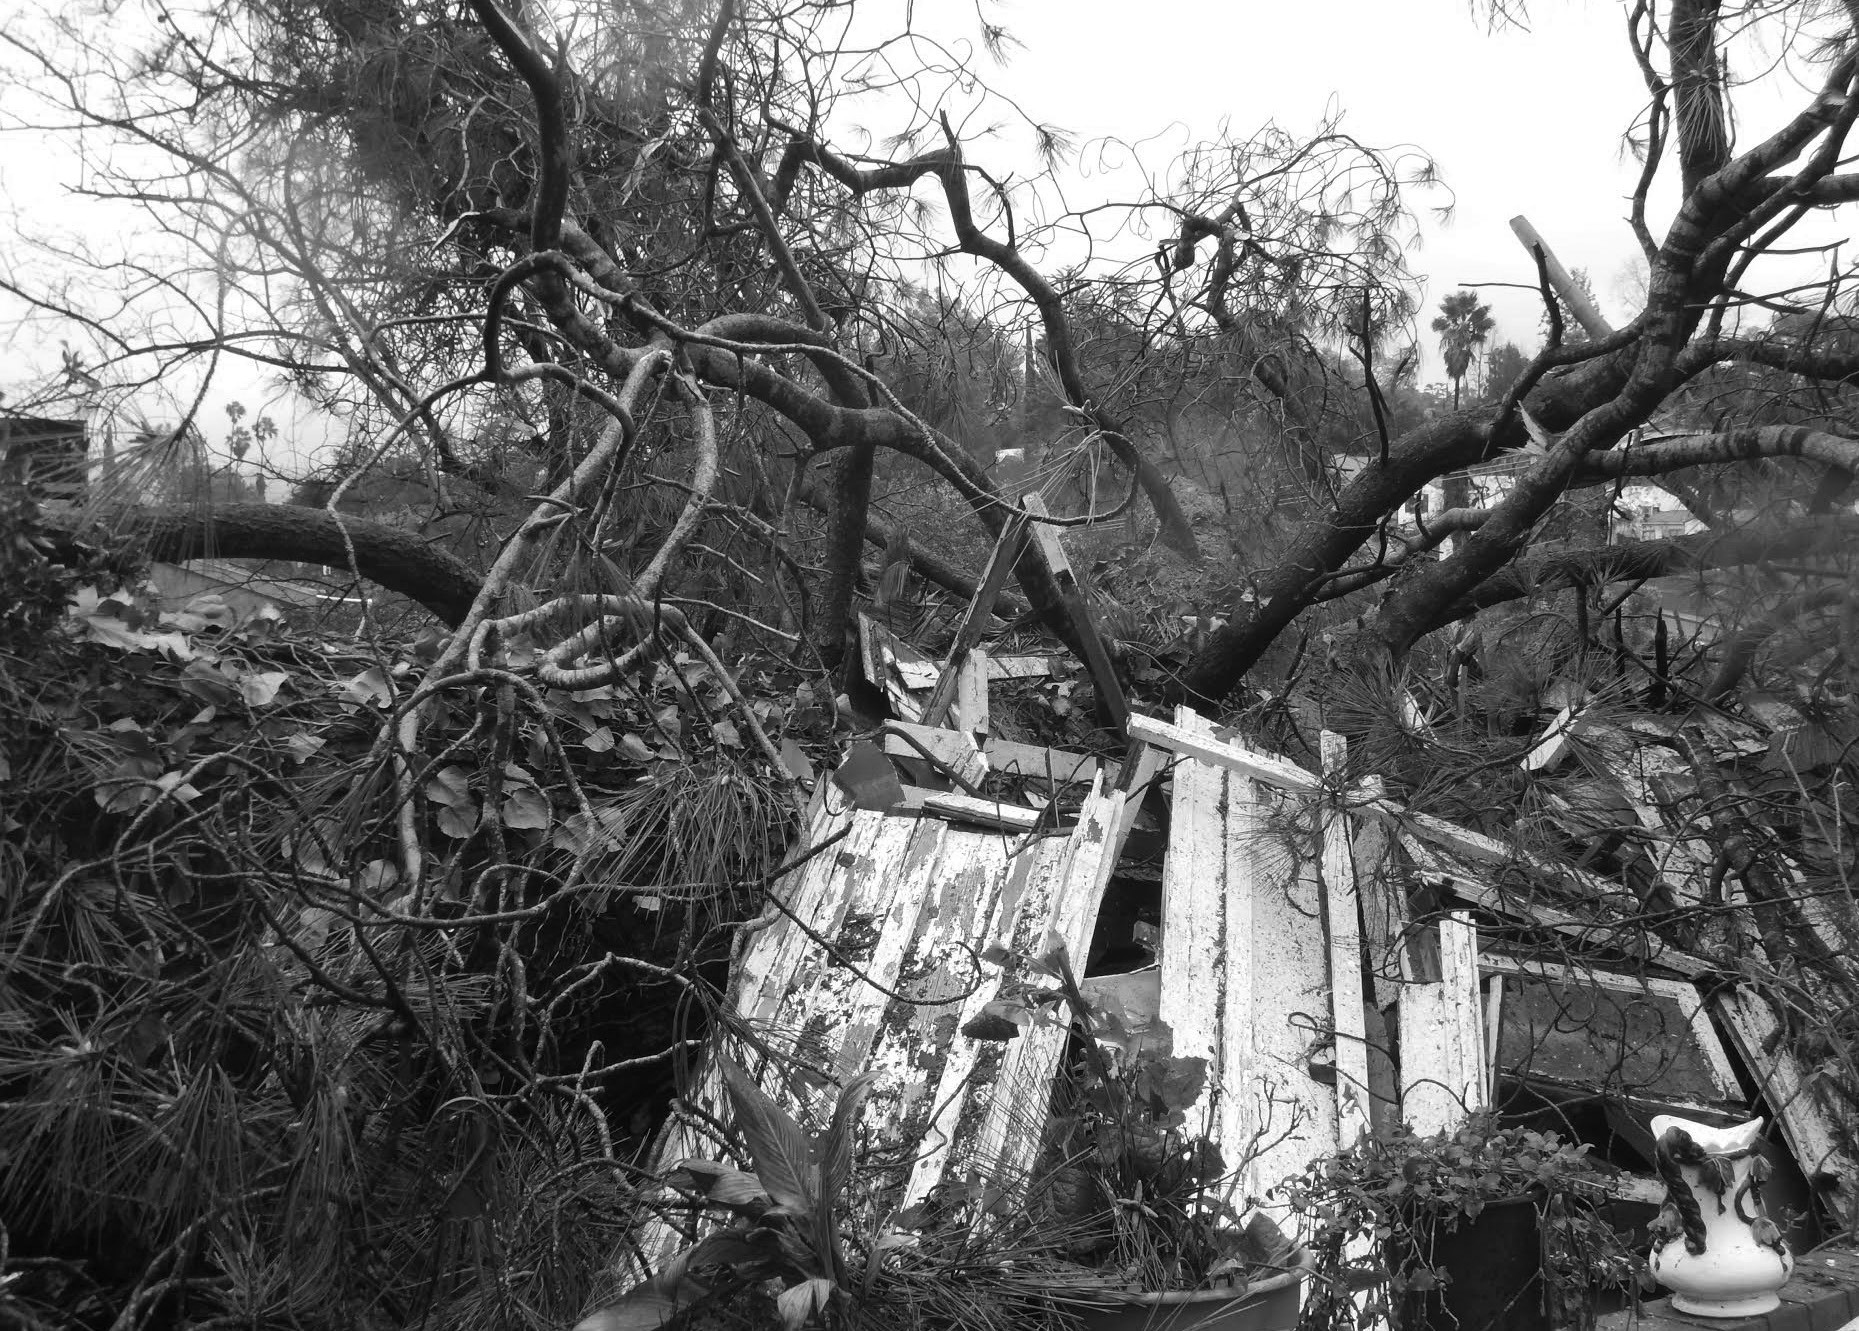 A Torrey Pine with an 8-foot wide trunk demolished a small cottage during Feb. 1's powerful windstorms. The tree crushed the one-bedroom cottage, but missed the historic two-story Pritchett House built in the 1880s.